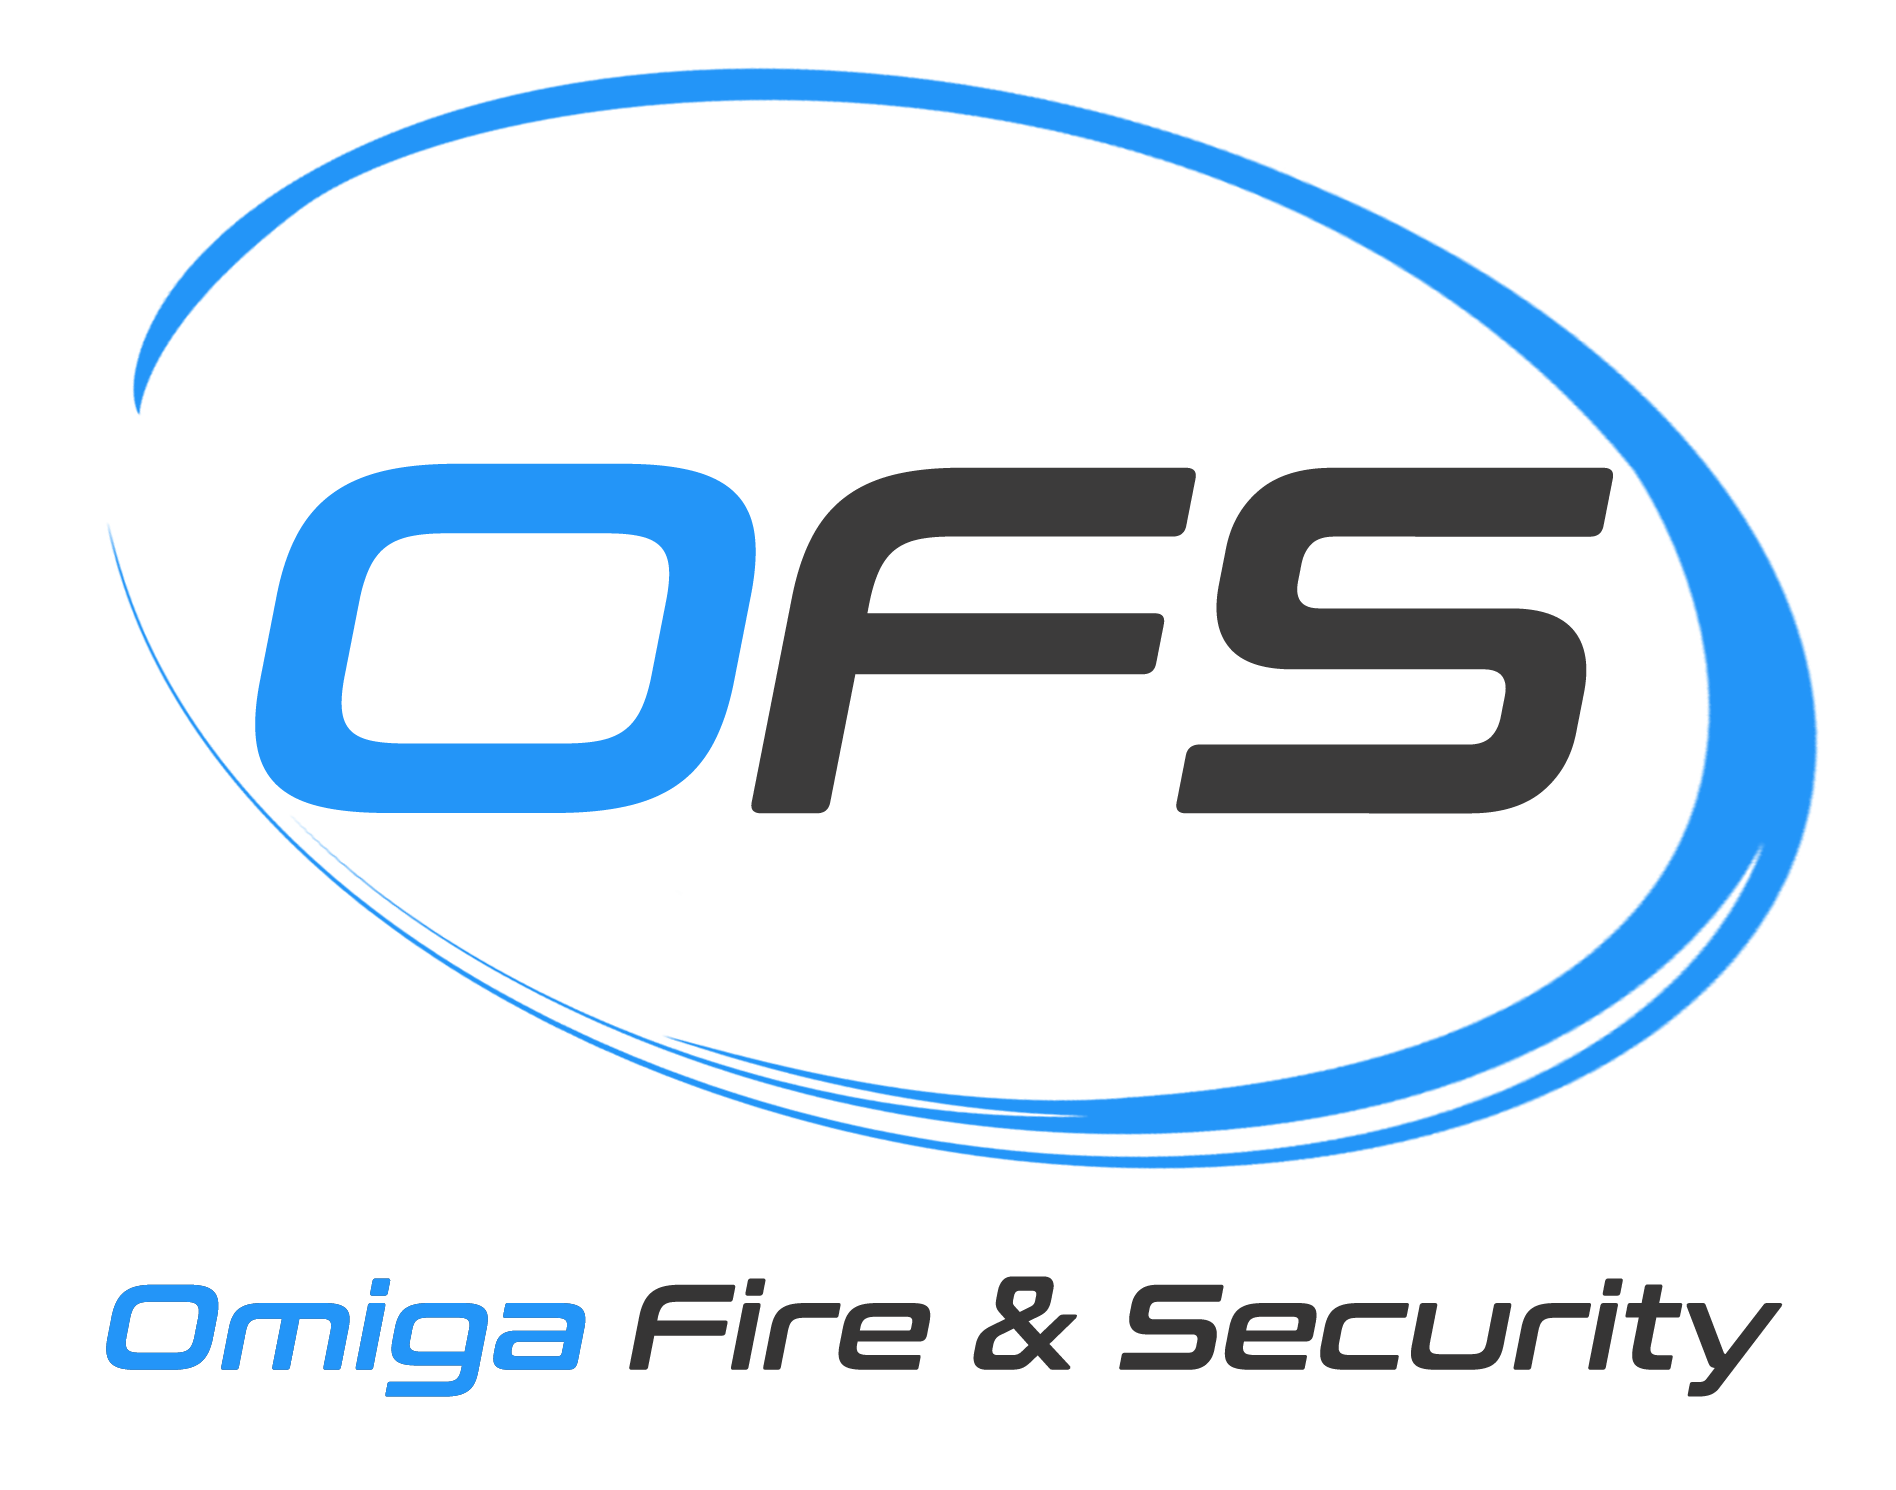 Omiga logo Transparent